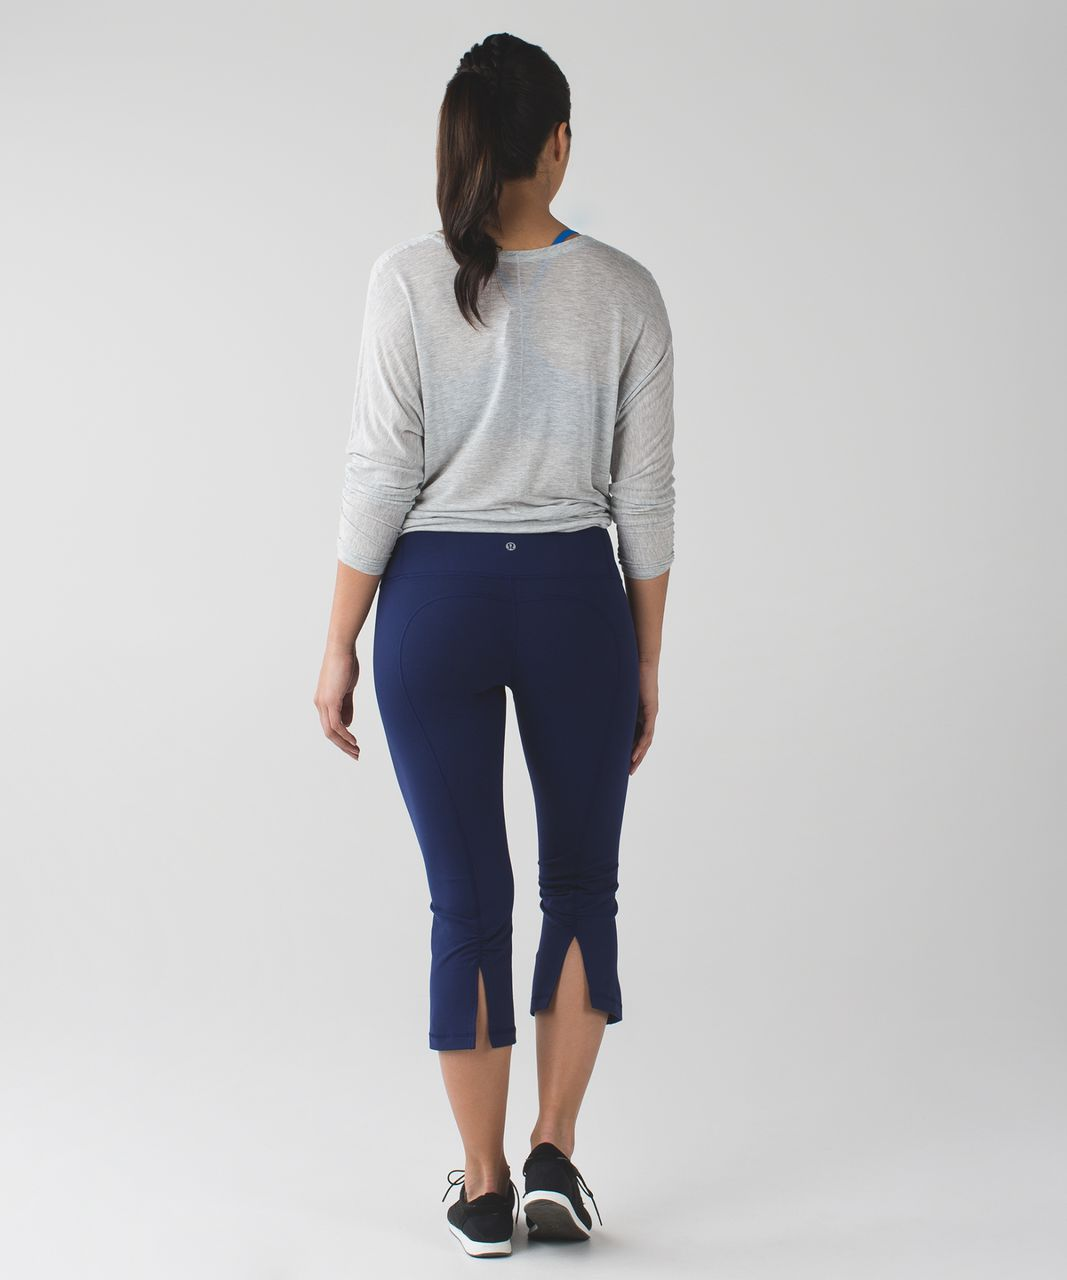 Lululemon Gather & Crow Crop II *Full-On Luon - Hero Blue